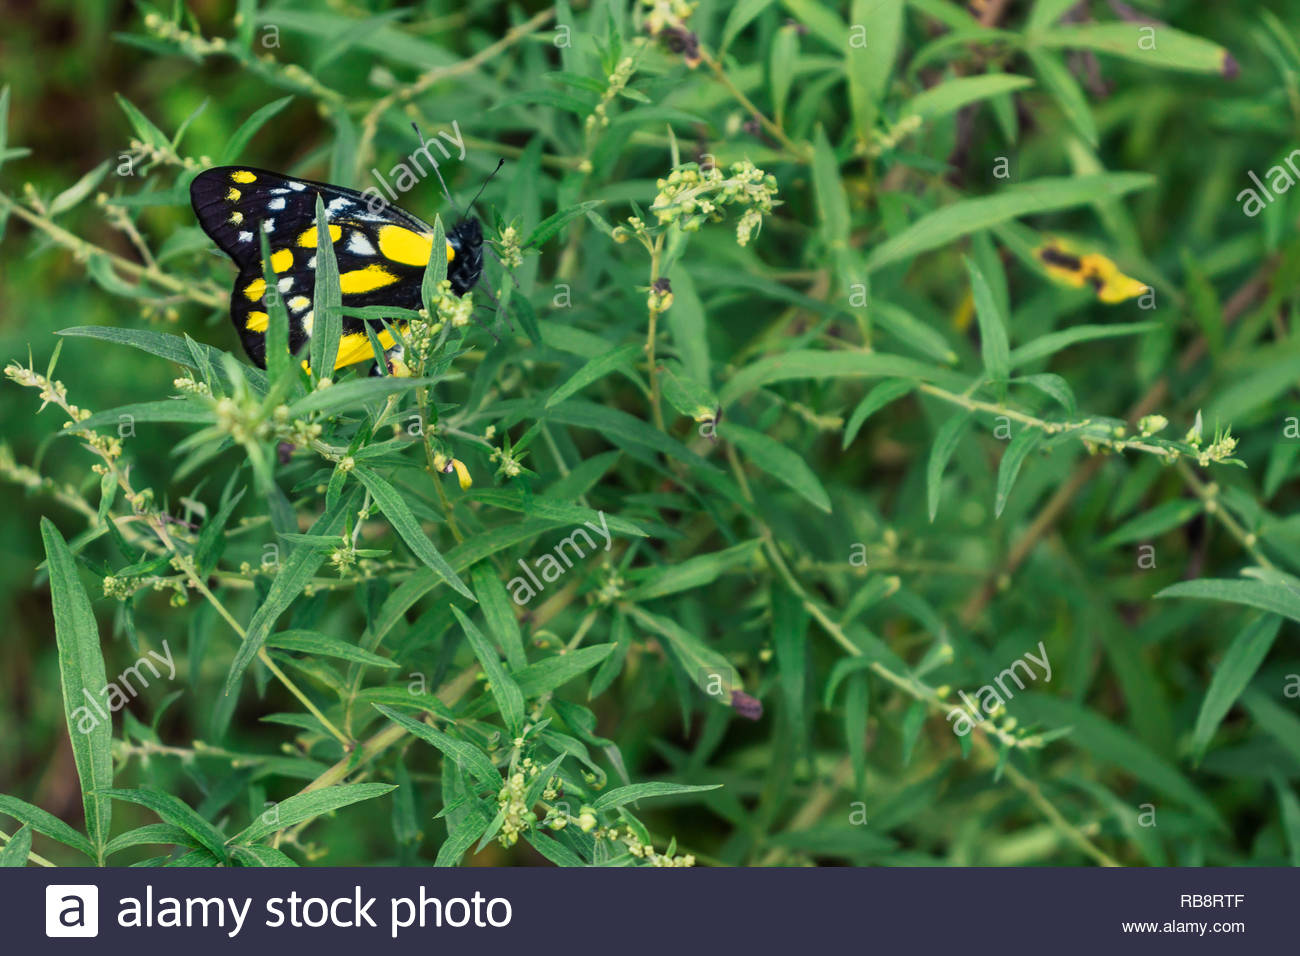 close up of butterfly on top of vibrant green plants - Stock Image